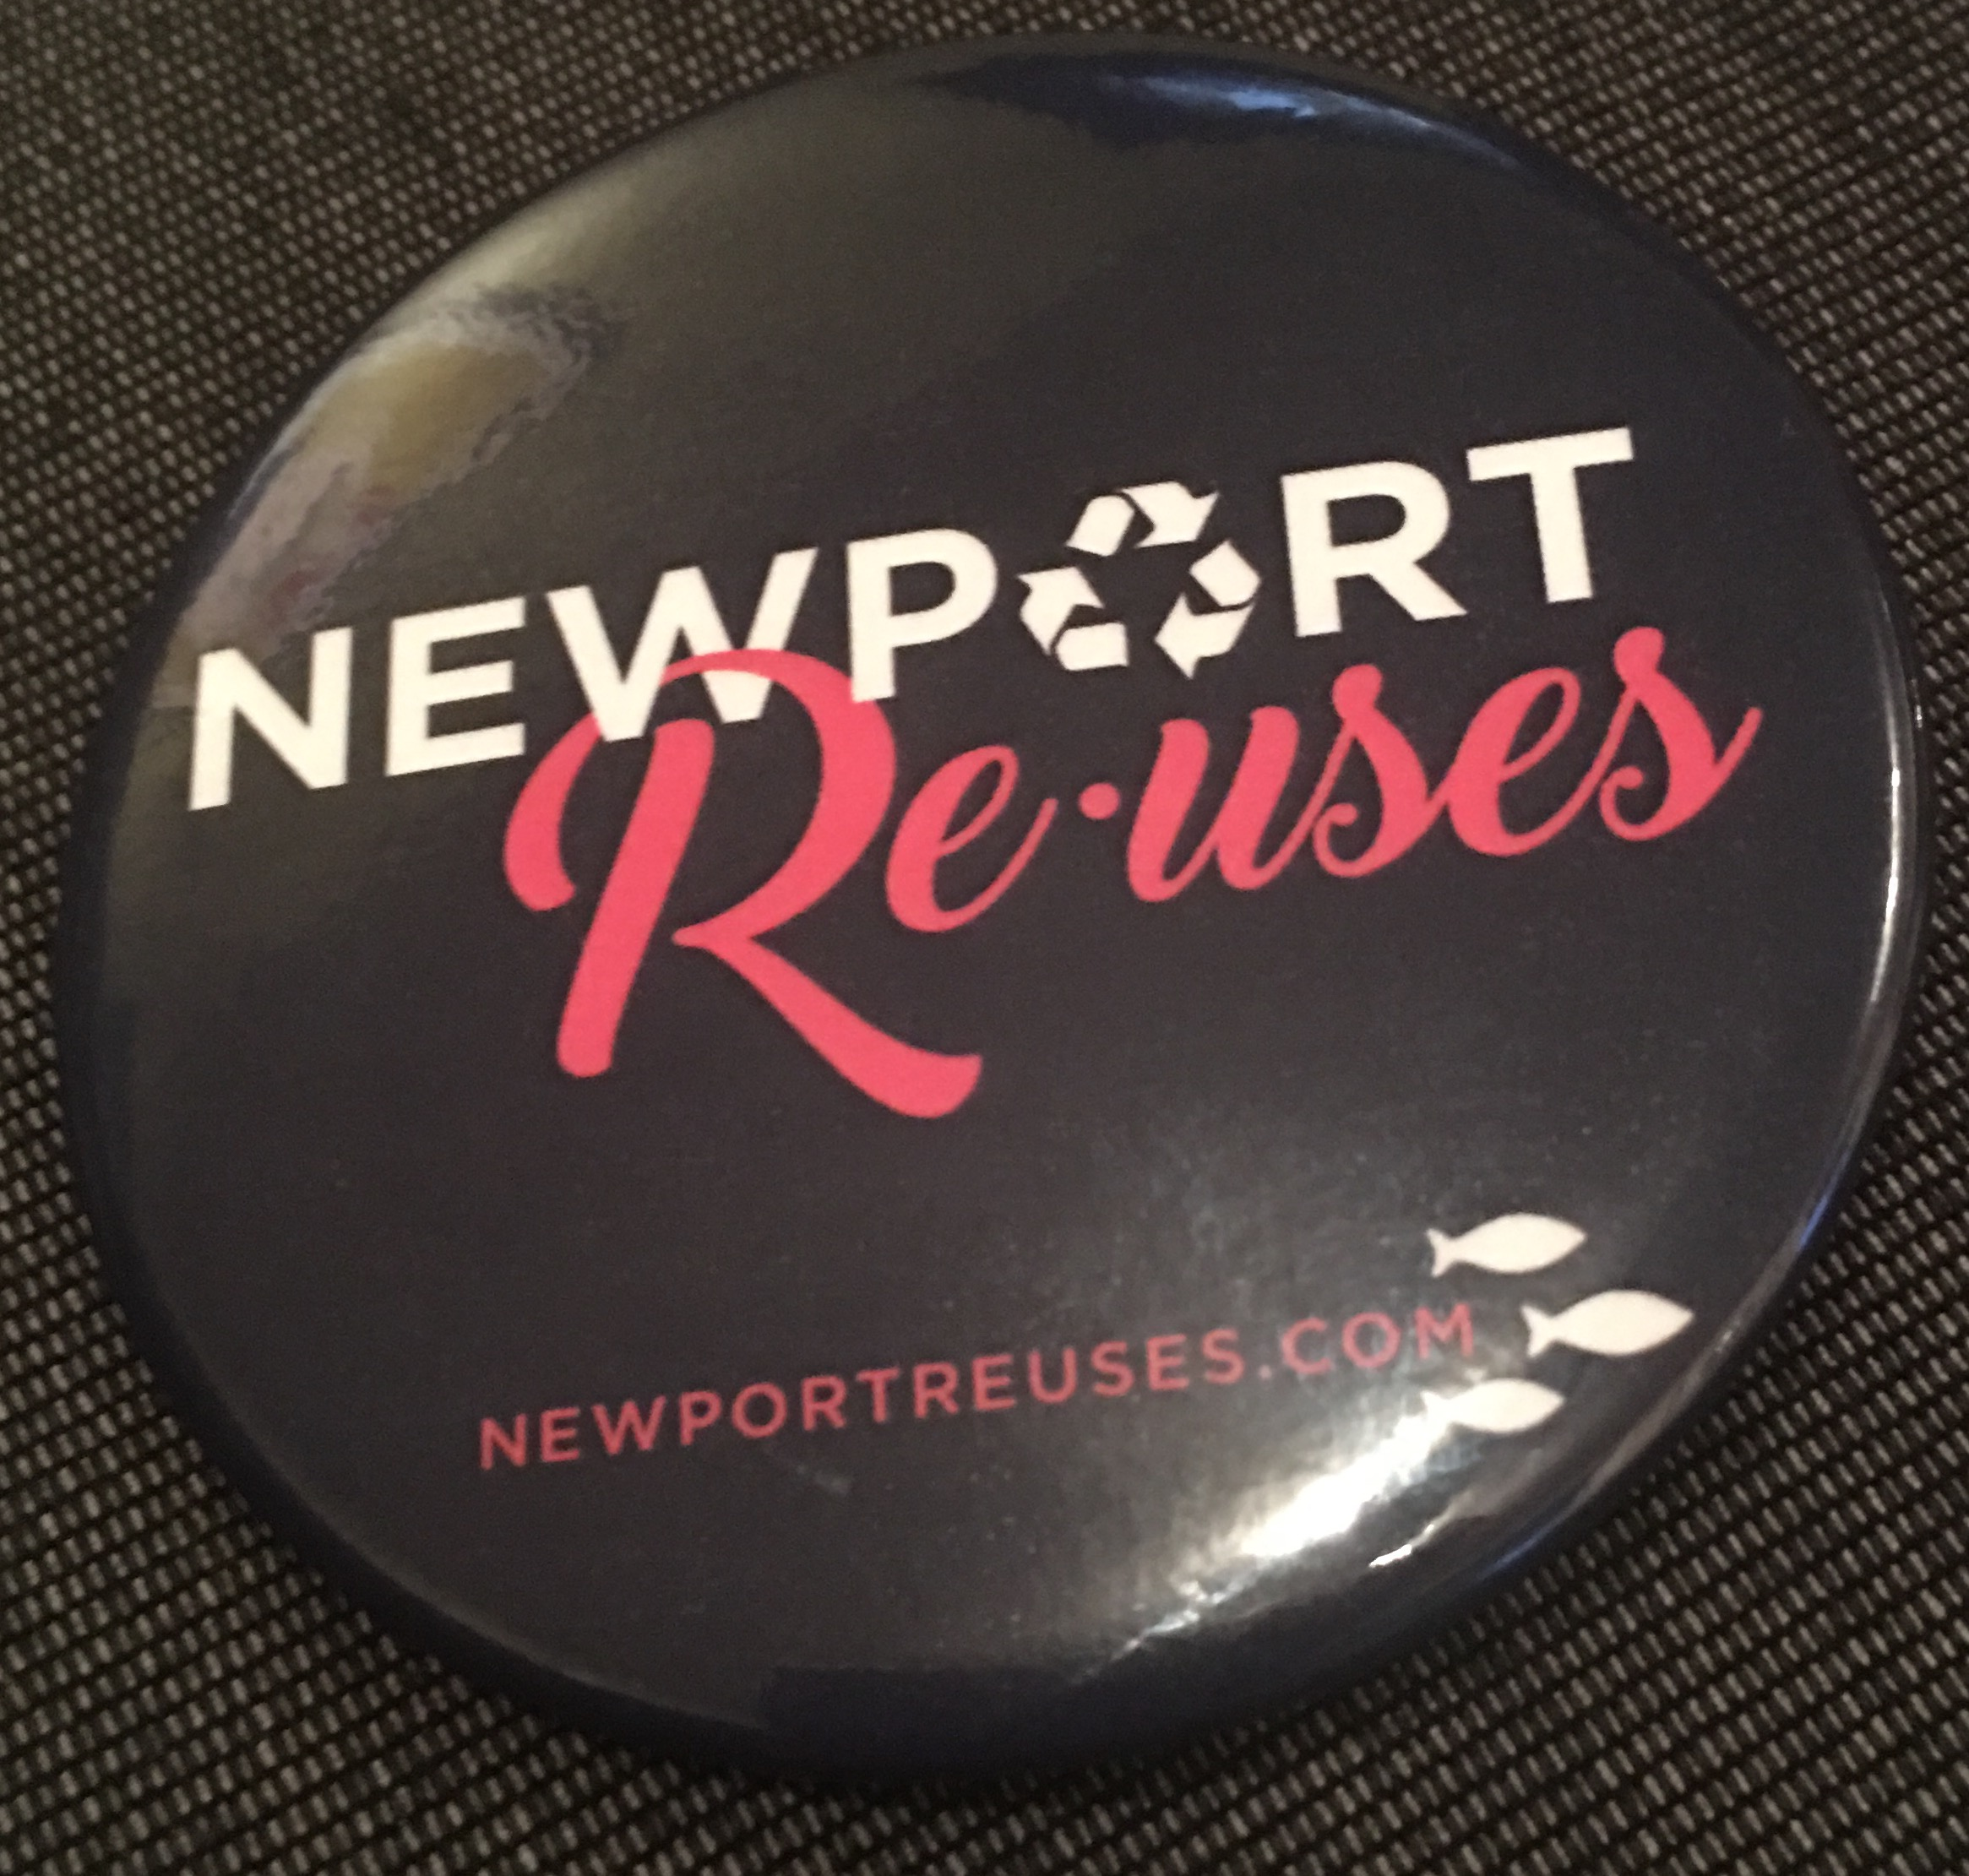 Newport Re-Uses initiative